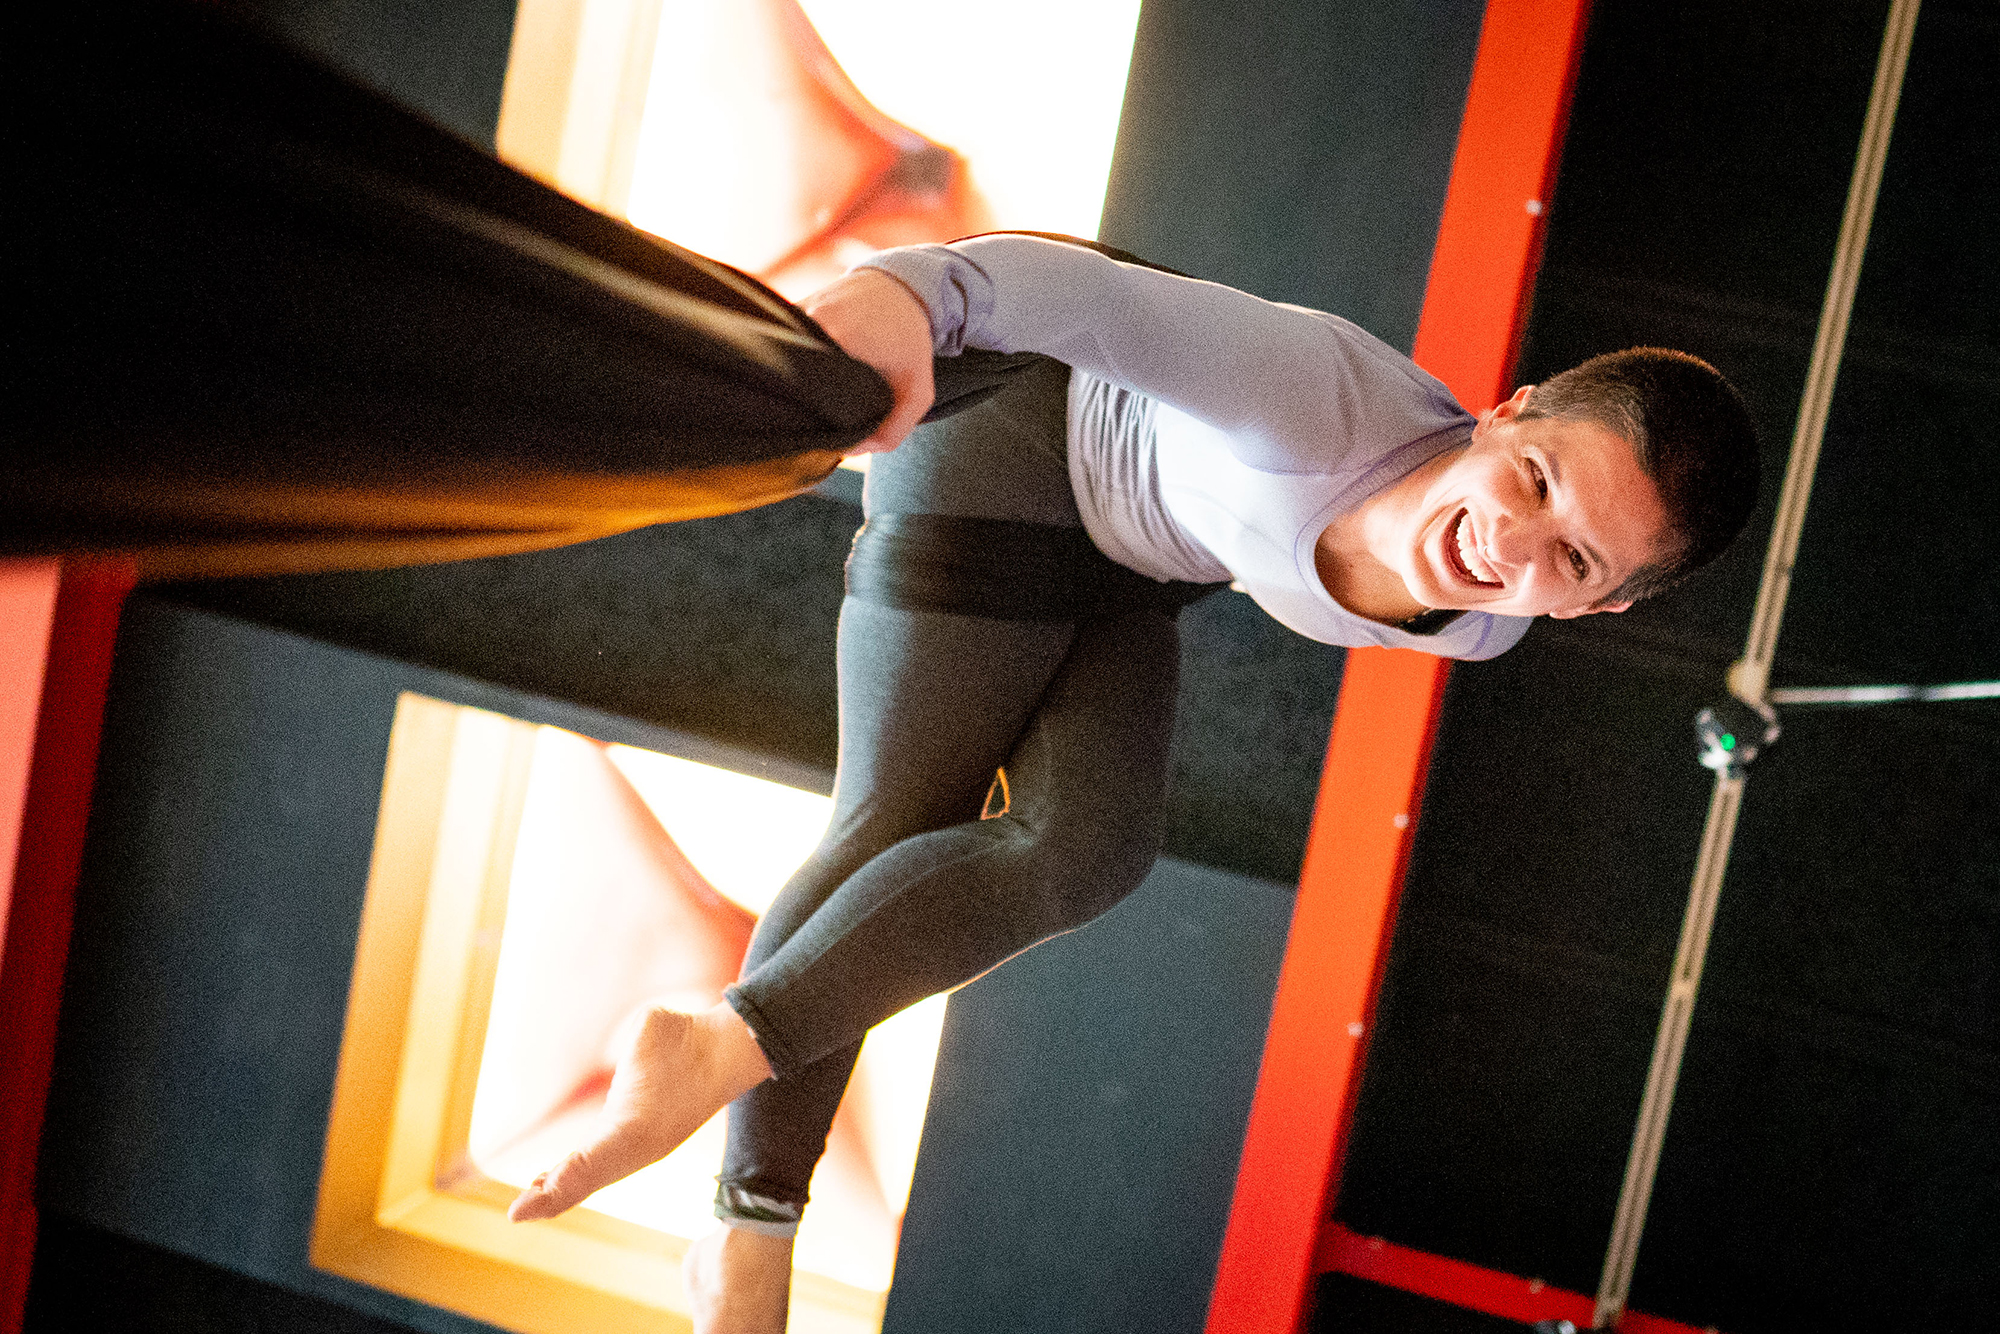 A medium shot from below of a white woman with dark cropped hair suspended from aerial silks and laughing.